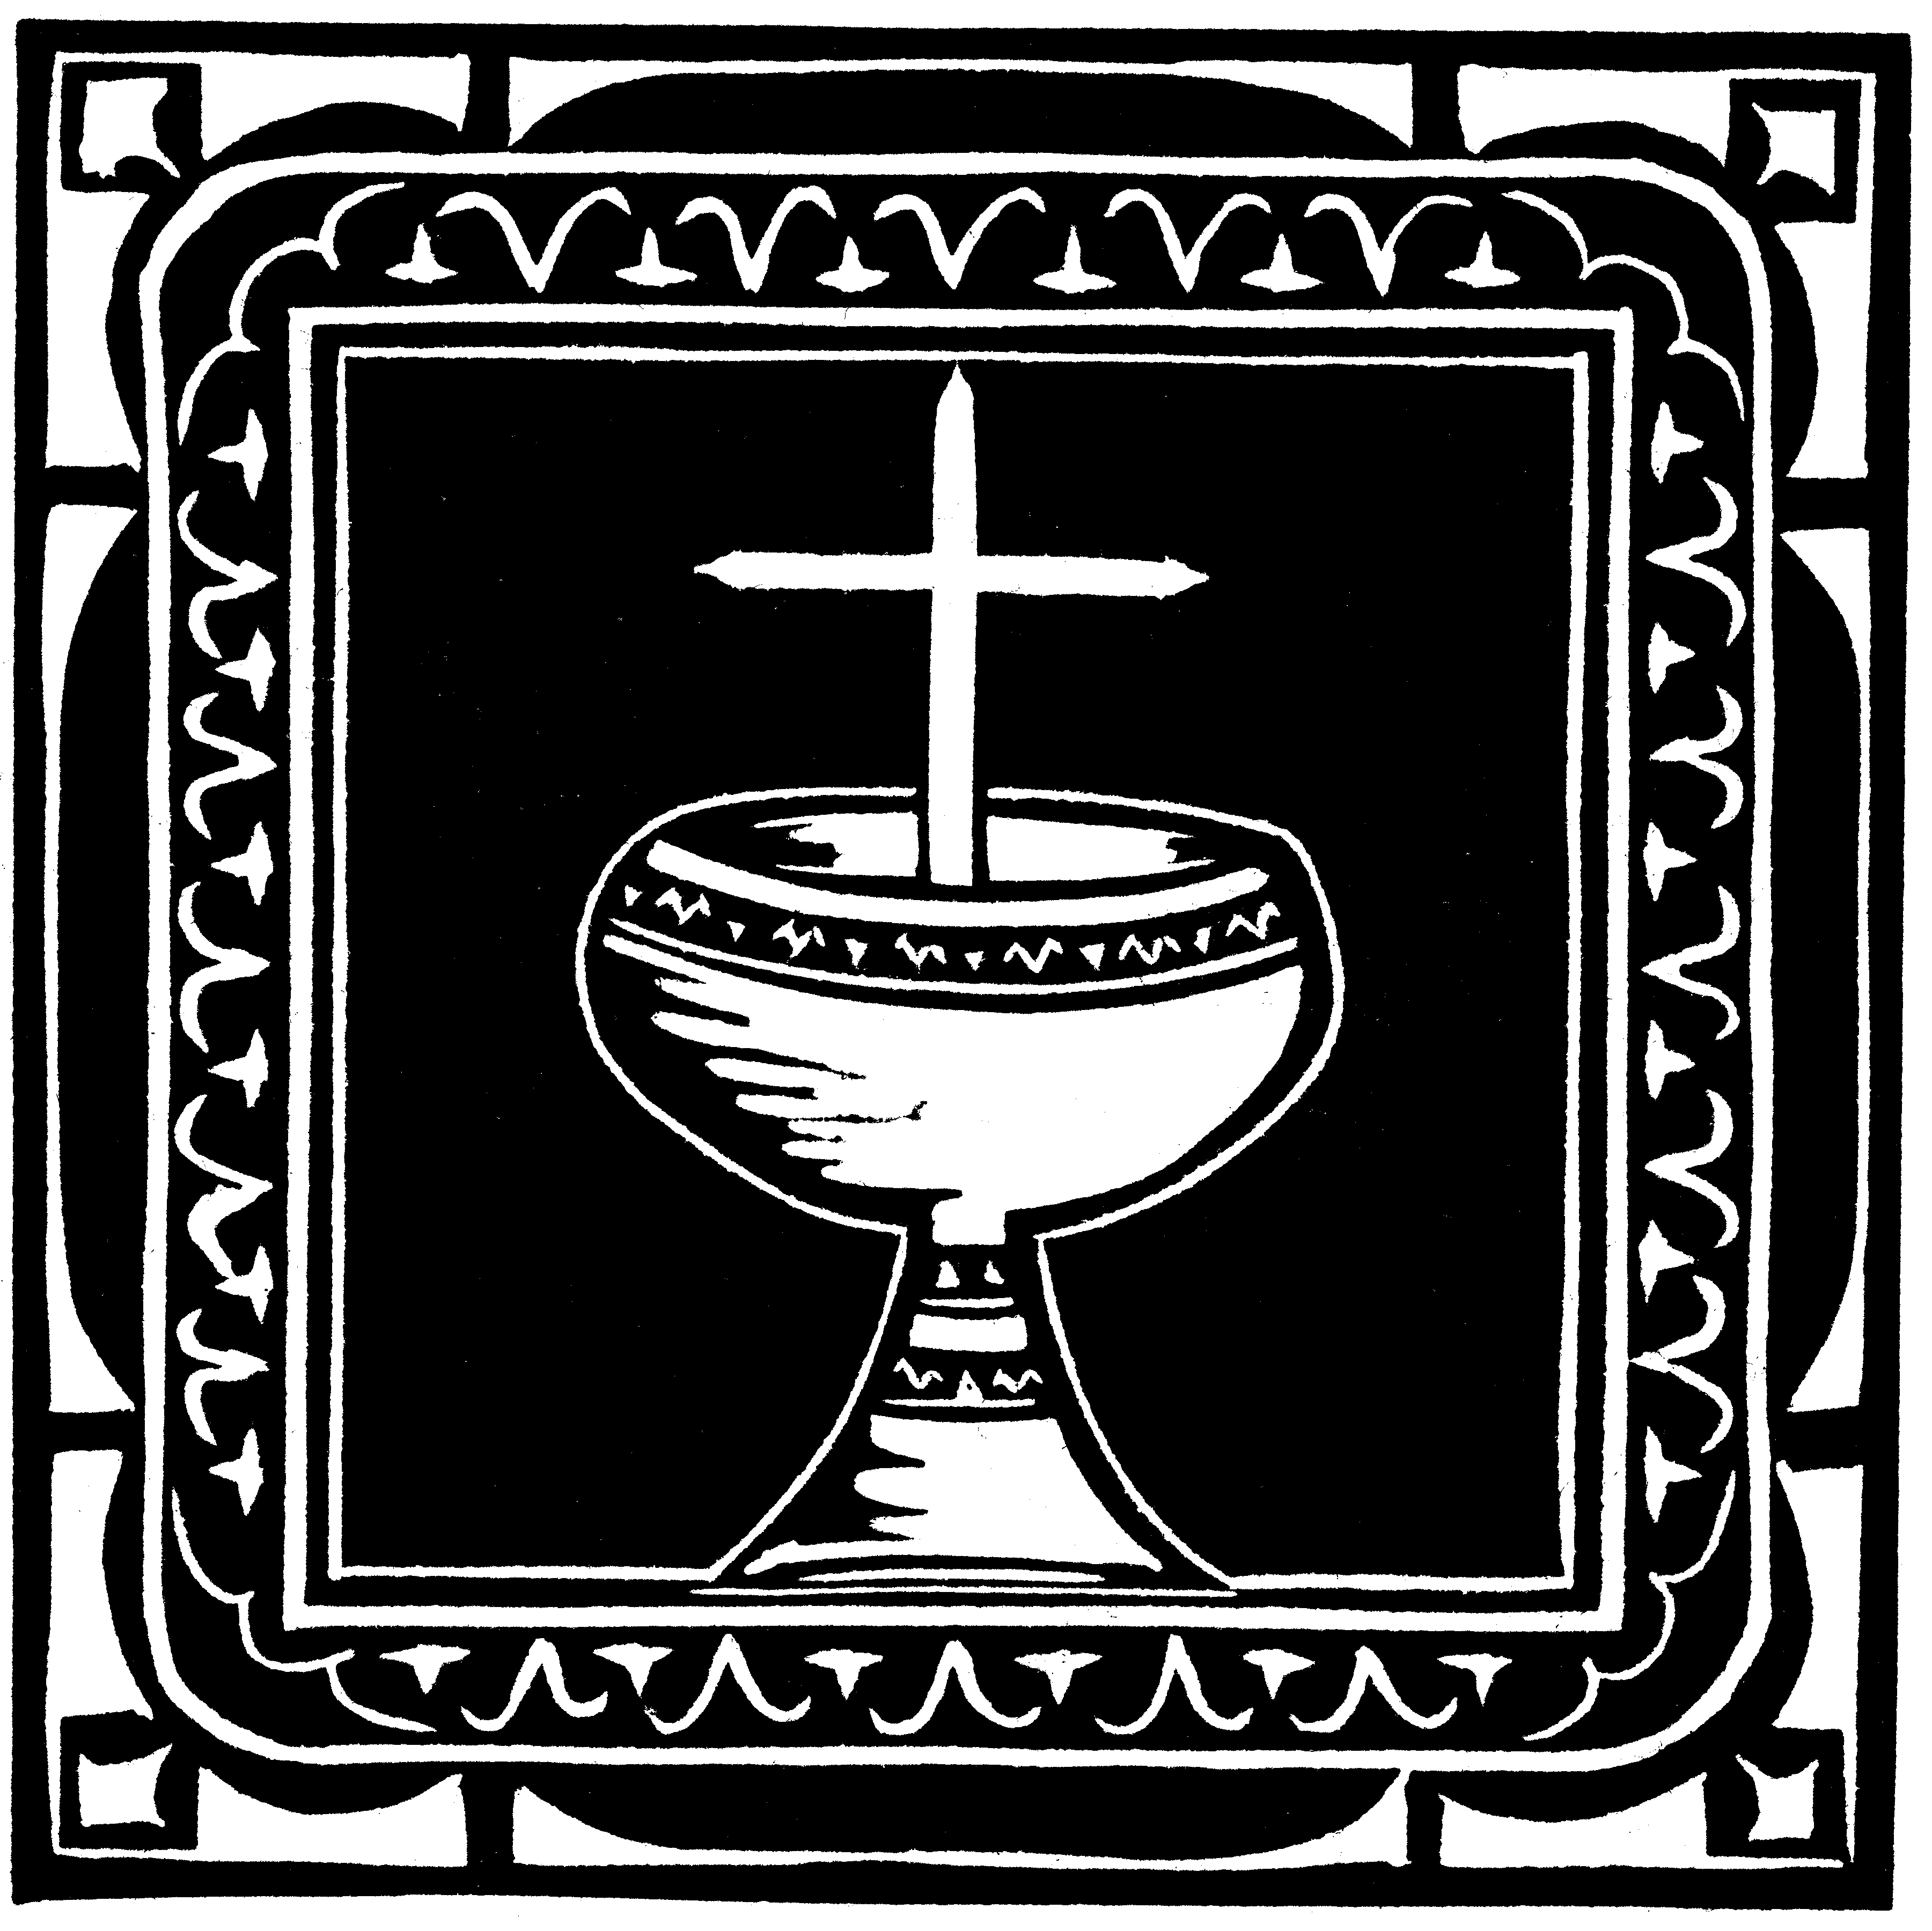 Chalice and Cross